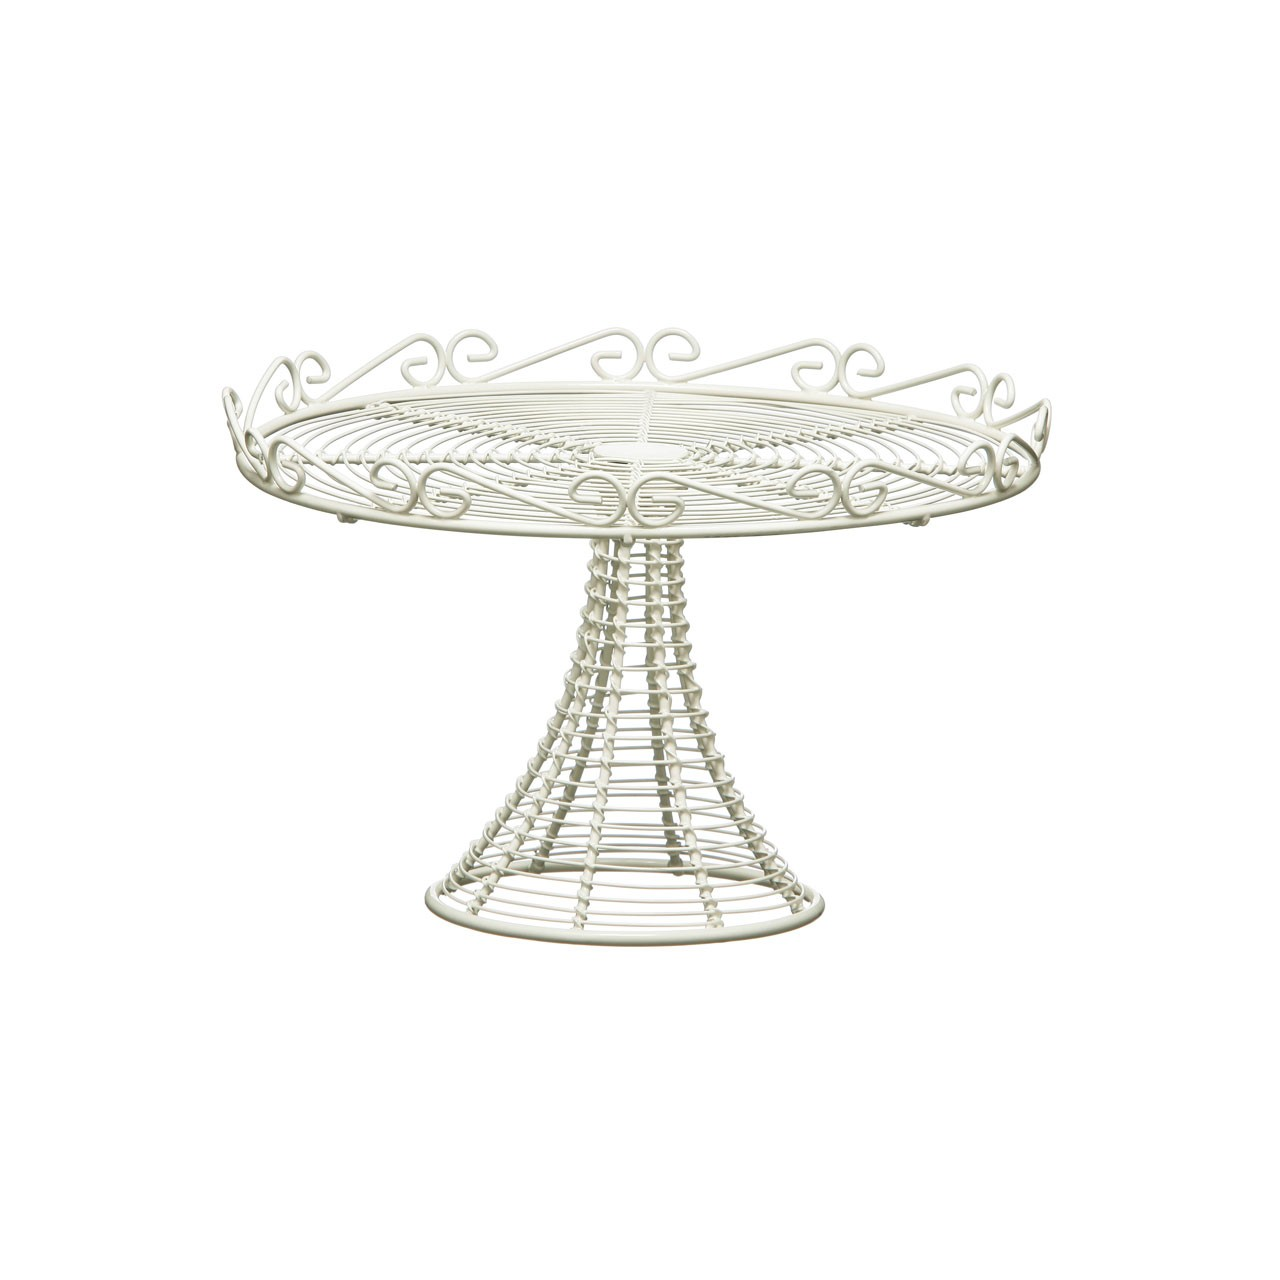 Cake Stand Durable And Sturdy Stylish Centrepiece